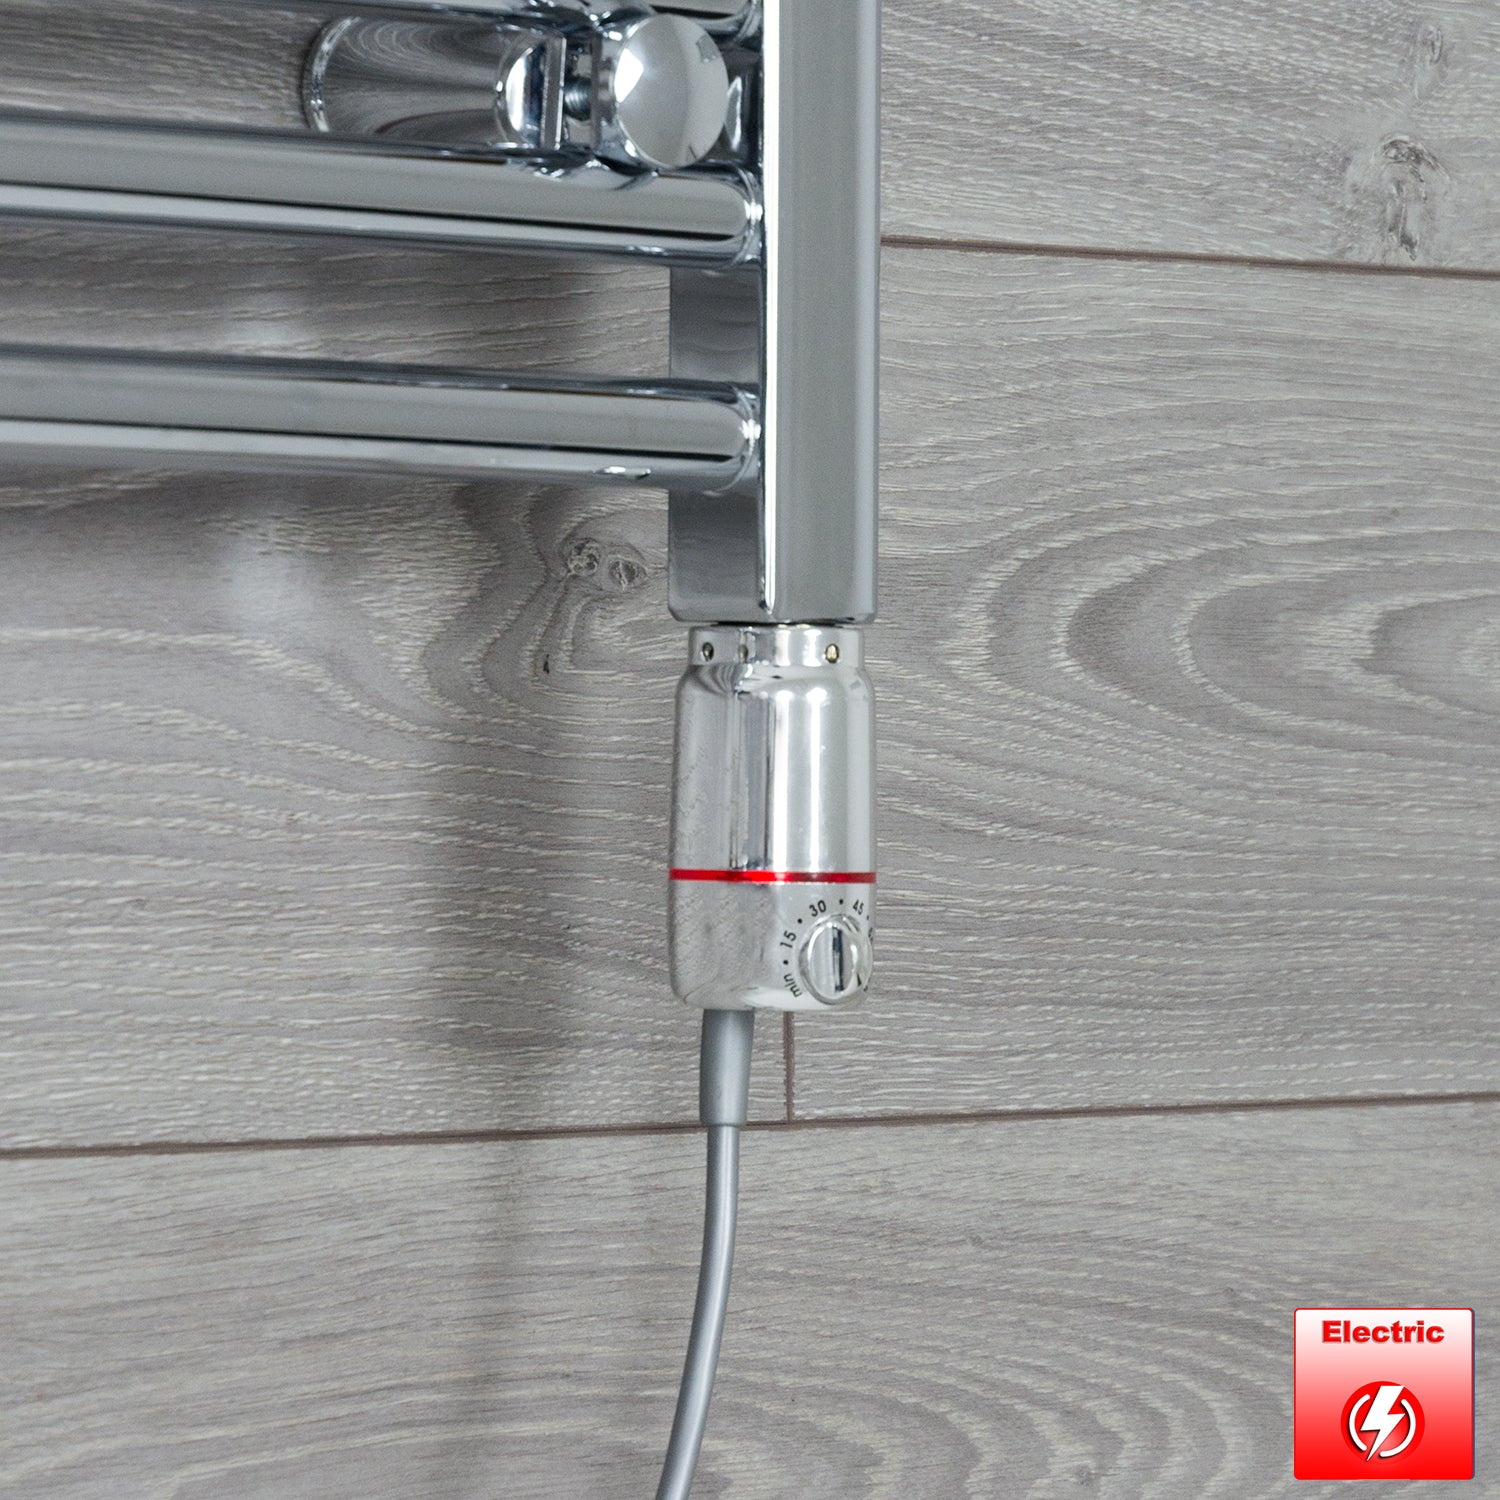 Towel Rail Element Thermostatic heating rod close up